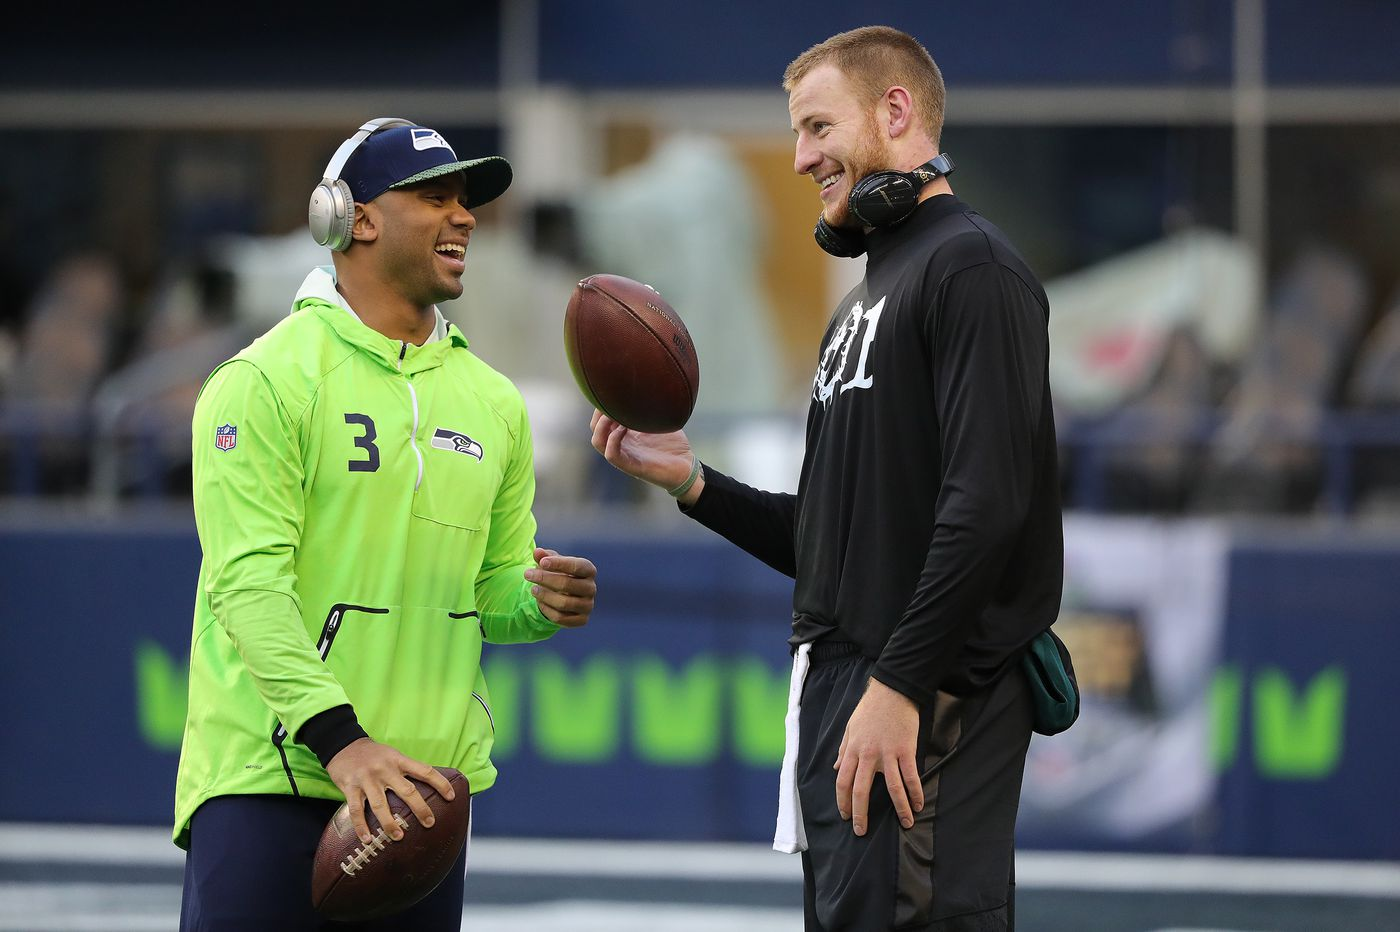 The NFL's real existential crisis might be a looming quarterback shortage | David Murphy